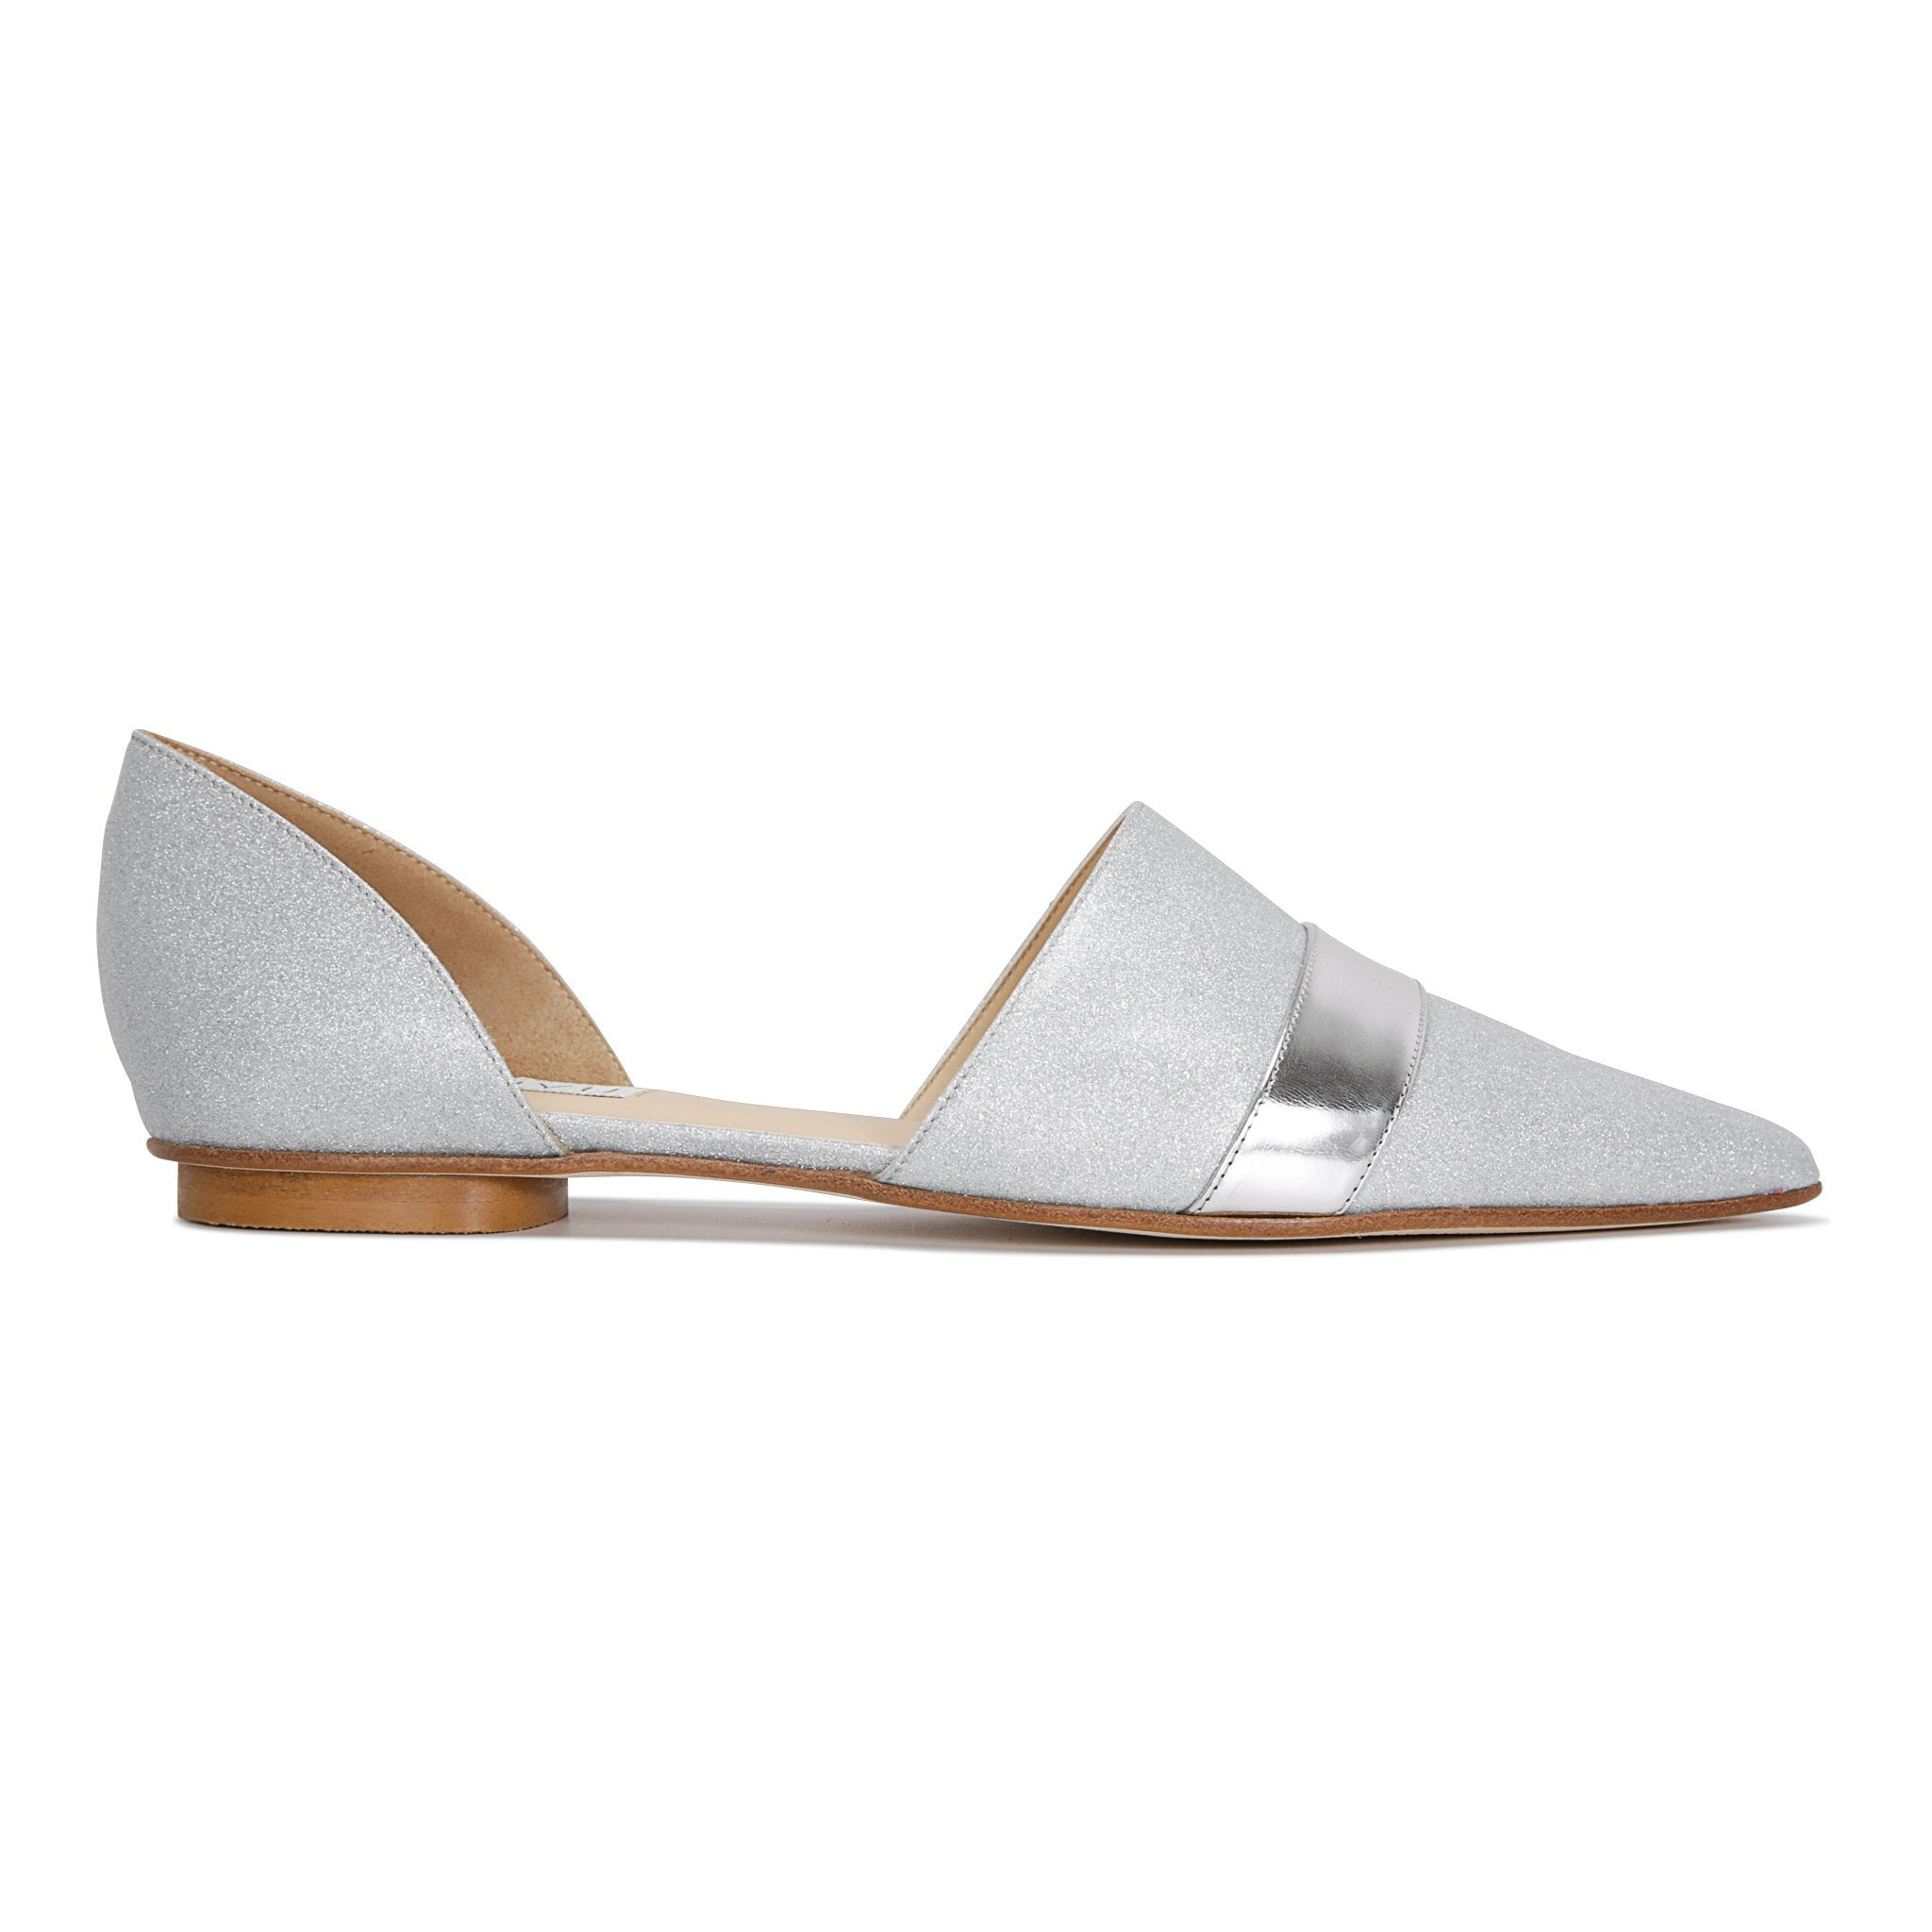 ELBA - Bright Argento + Metallic Argento Stripe, VIAJIYU - Women's Hand Made Sustainable Luxury Shoes. Made in Italy. Made to Order.